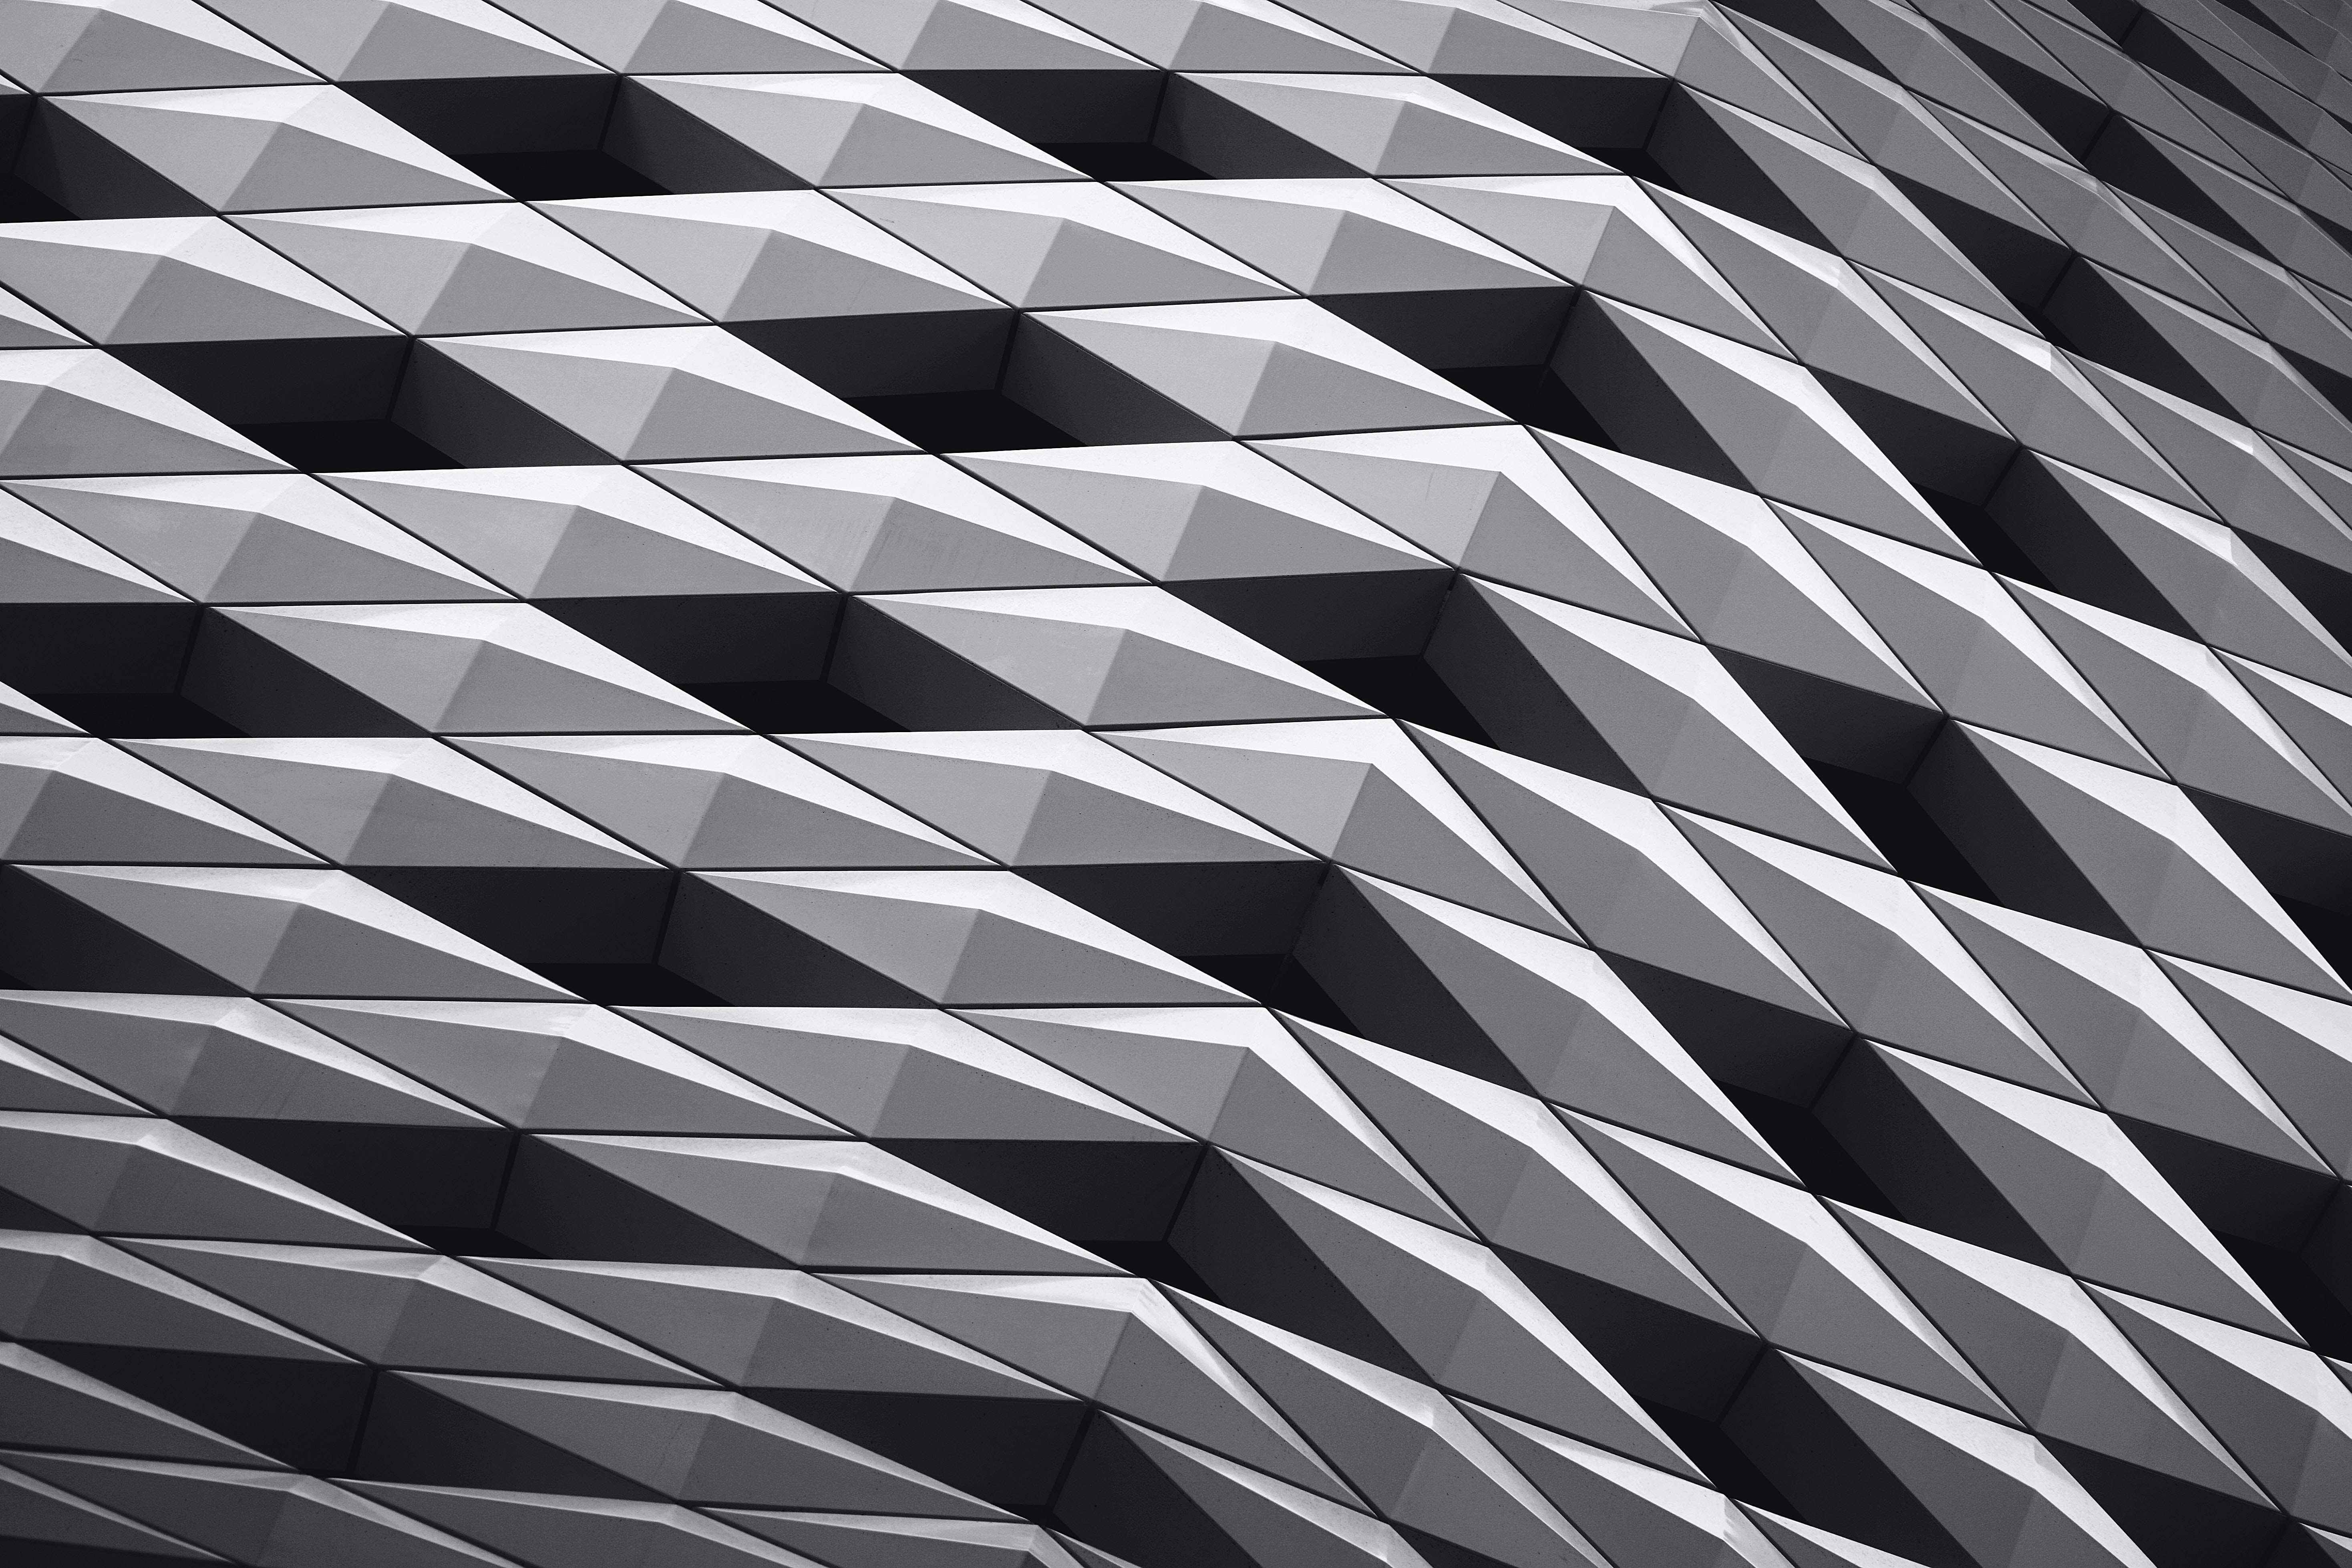 A building facade with a pattern made of black and white diamond shapes on